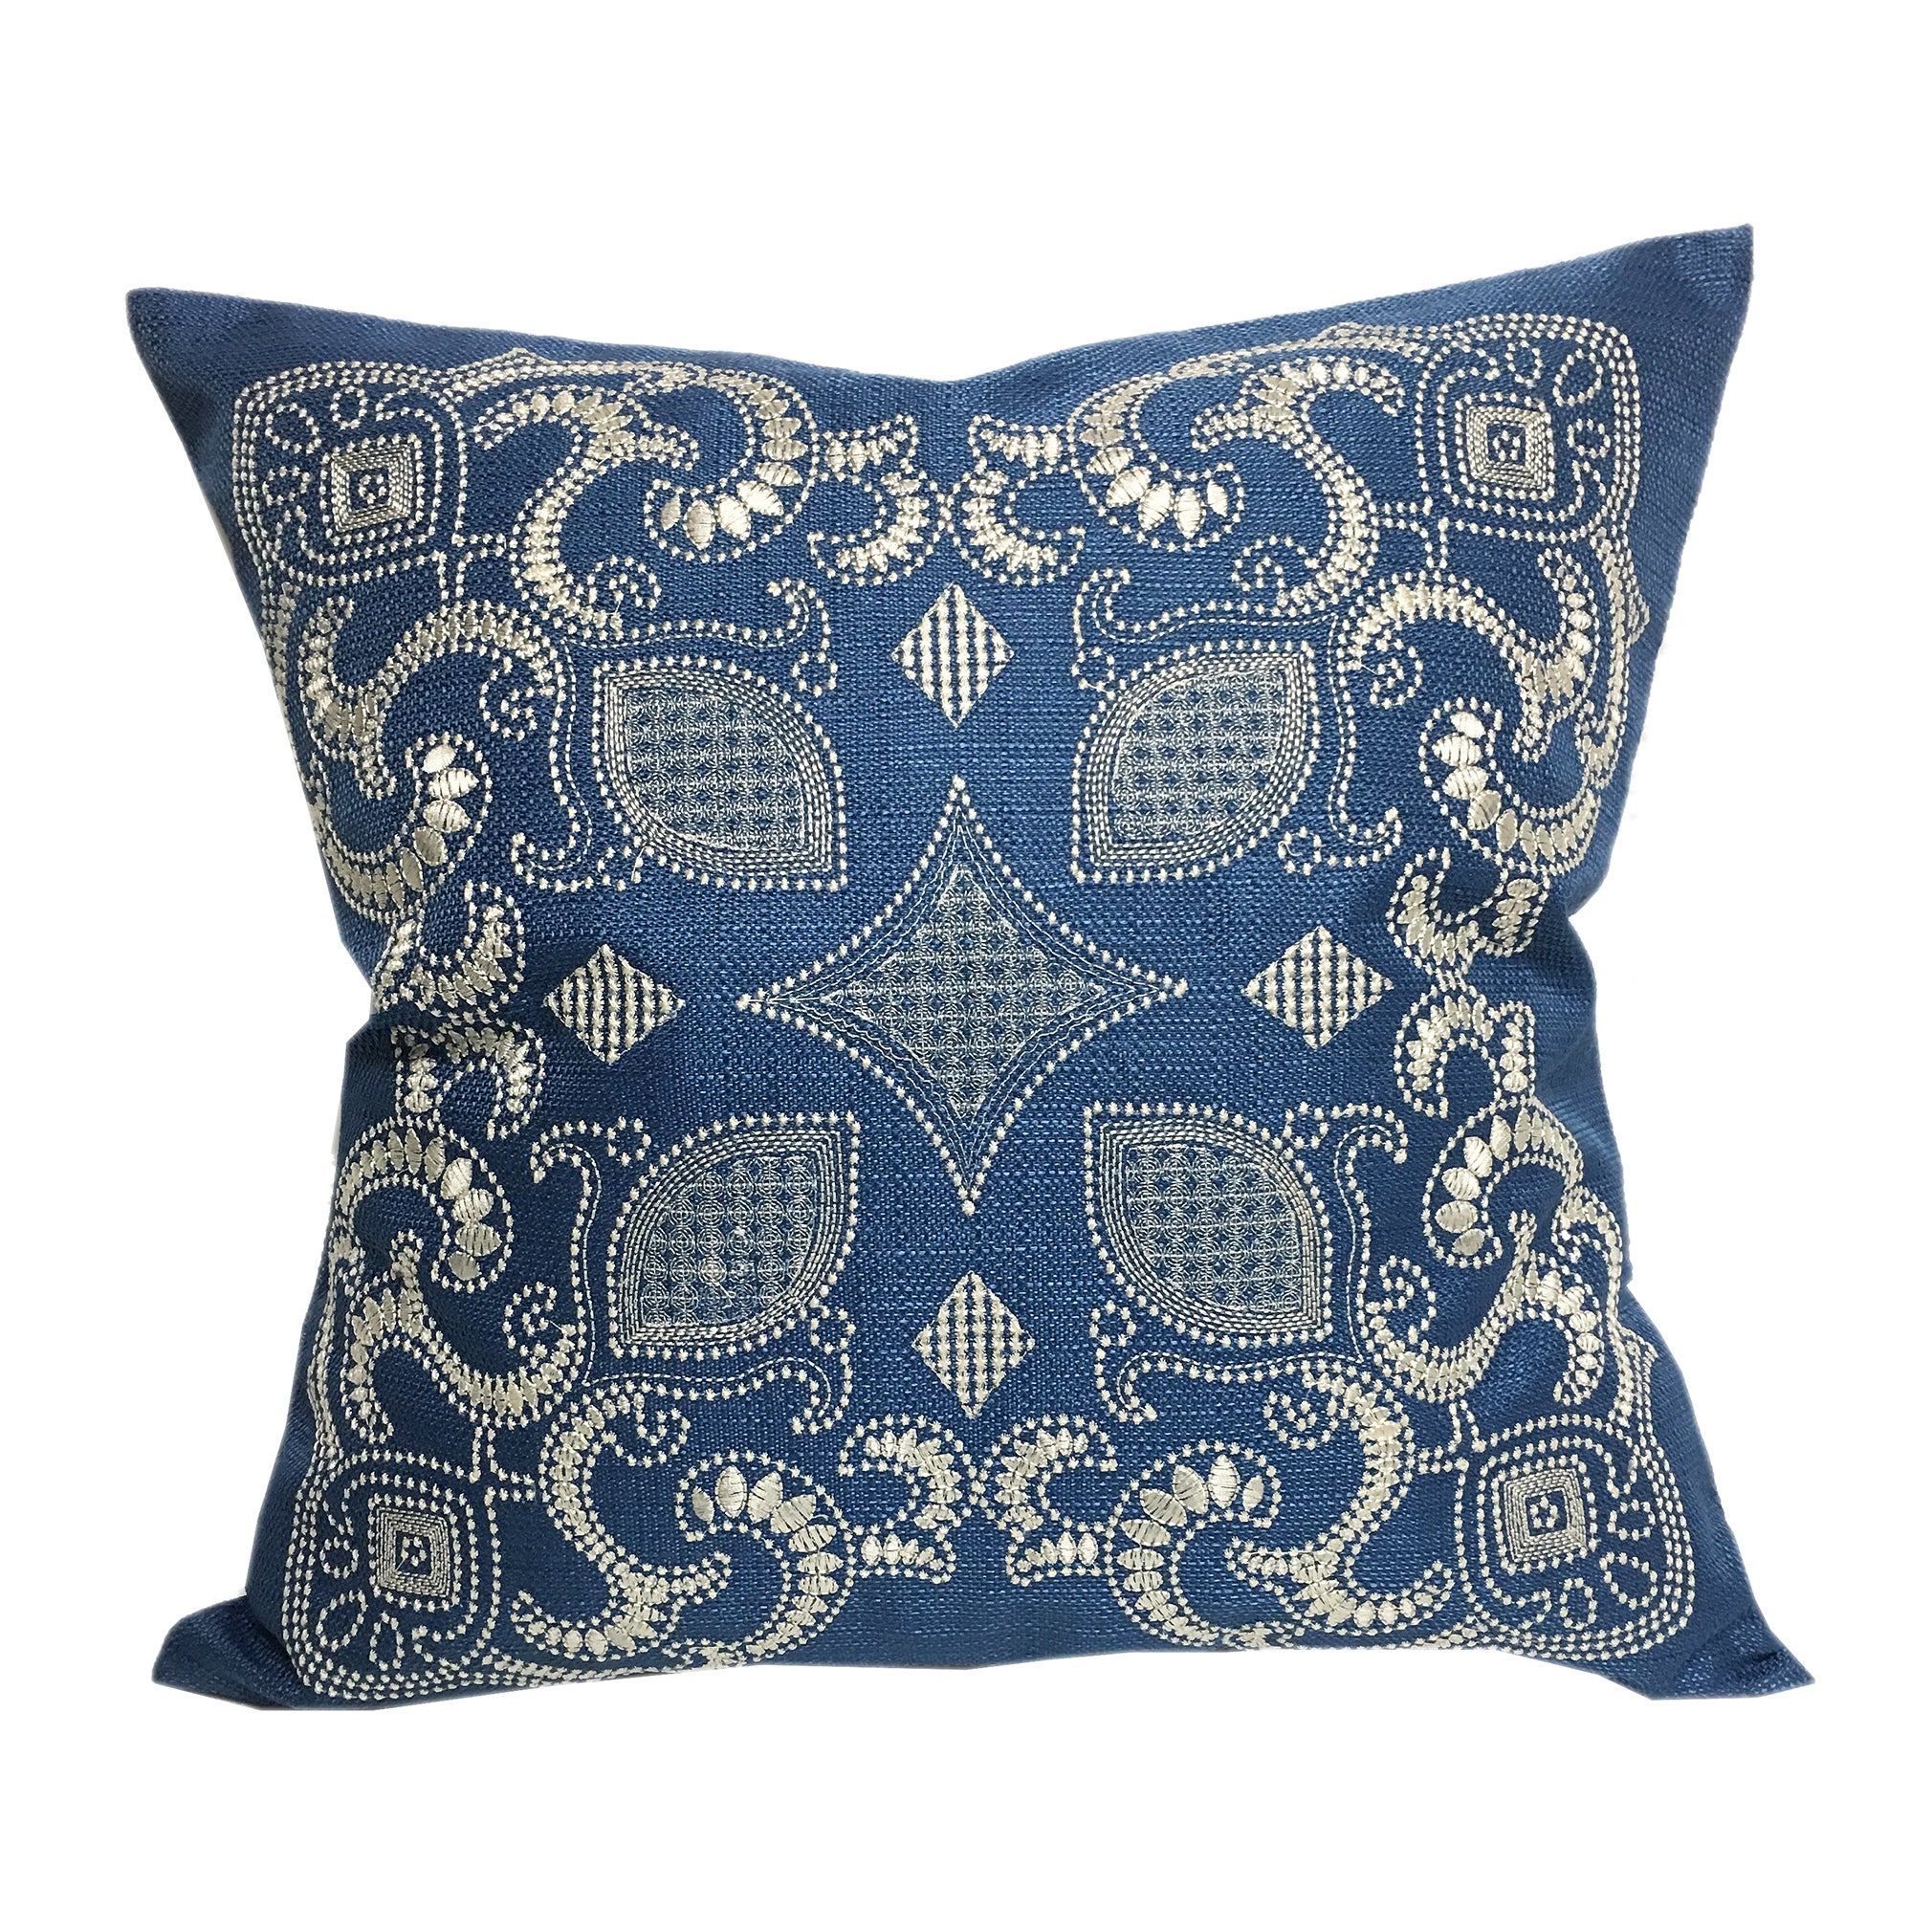 Home Accent Pillows Sapphire Blue 20 Inch Woven Embroidered Throw Pillow Overstock 14722607